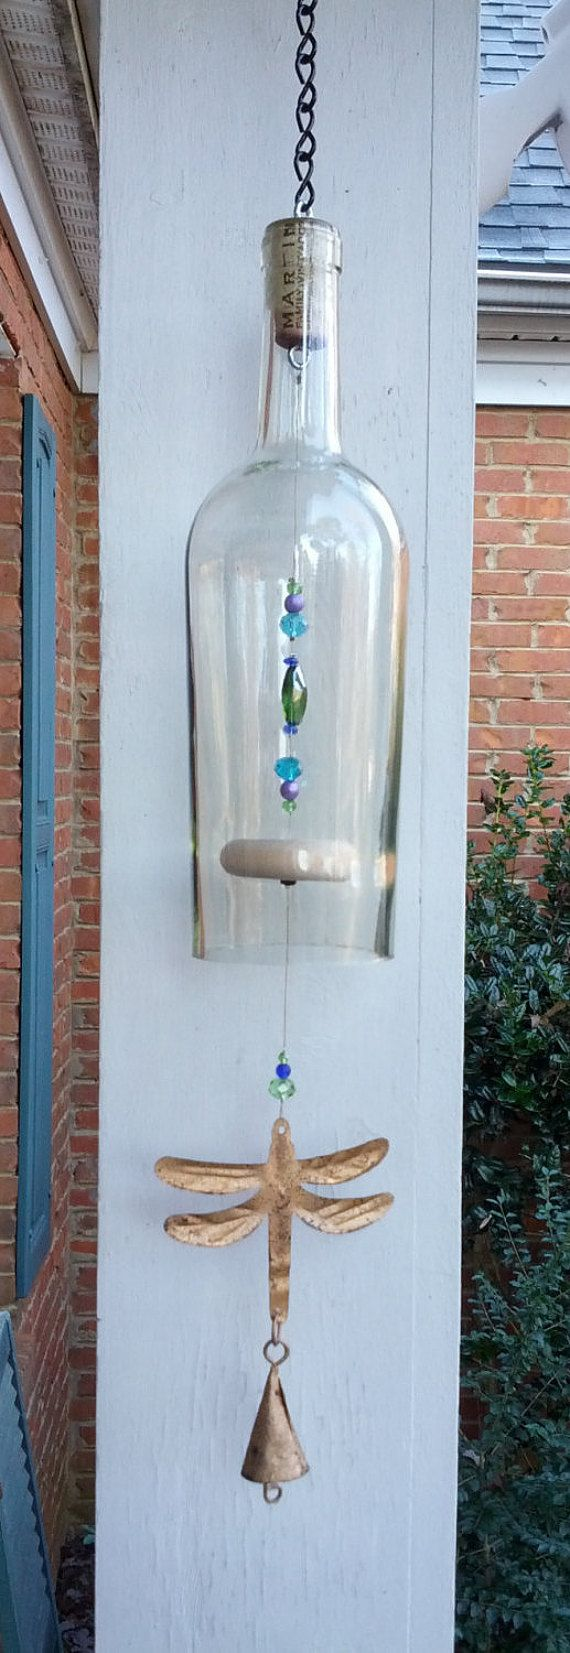 This whimsical wine bottle wind chime is made using glass beads and a wooden dinger strung on a nylon coated steel wire and finished with a